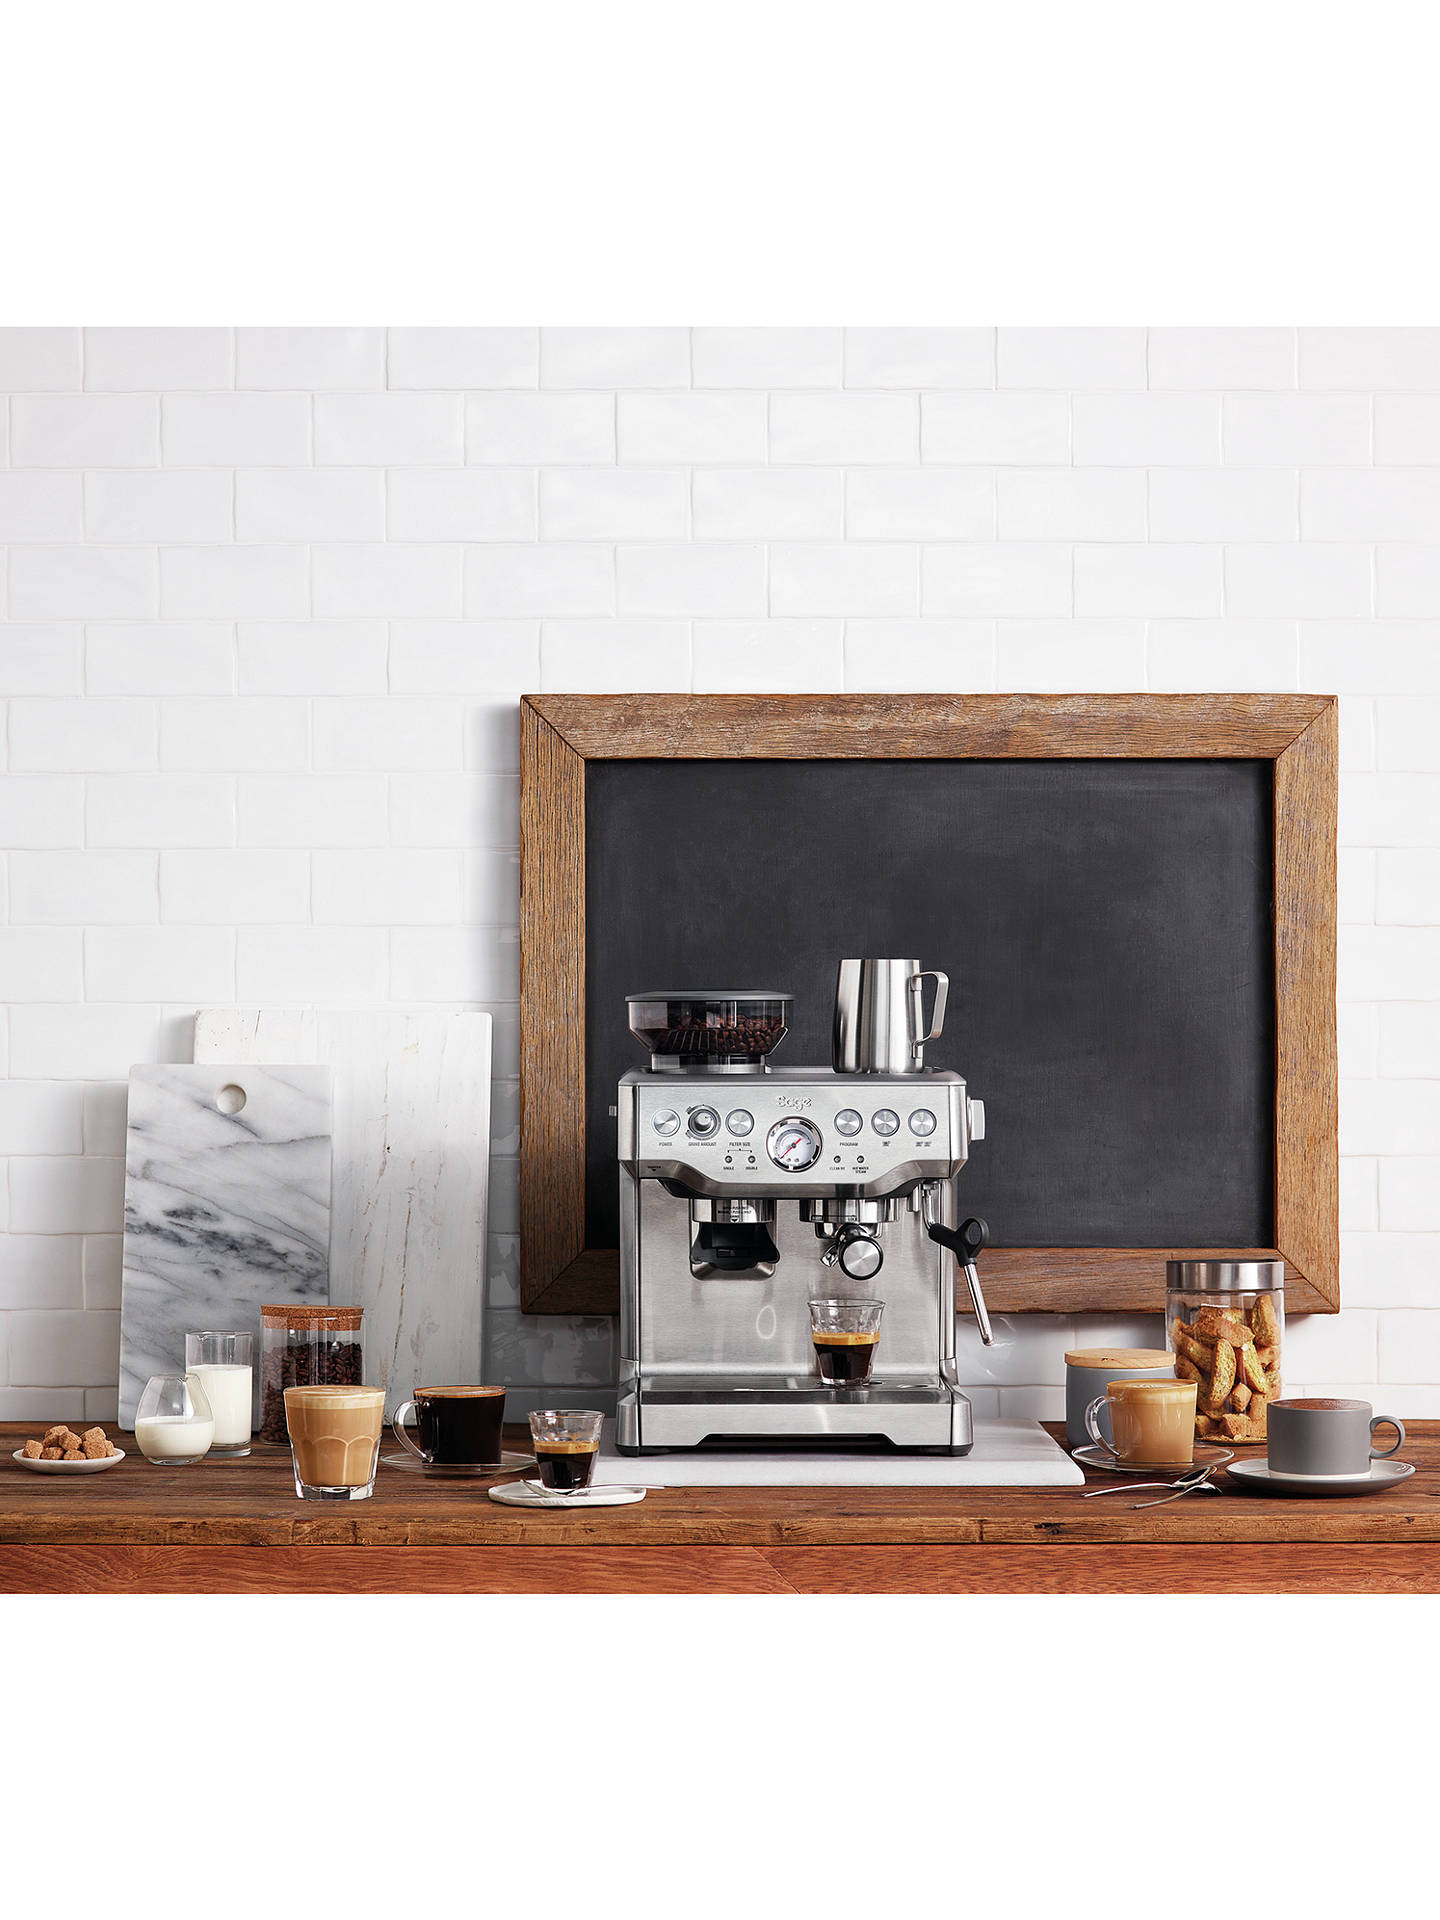 Buy Sage Barista Express Bean-to-Cup Coffee Machine with Milk Jug, Stainless Steel Online at johnlewis.com